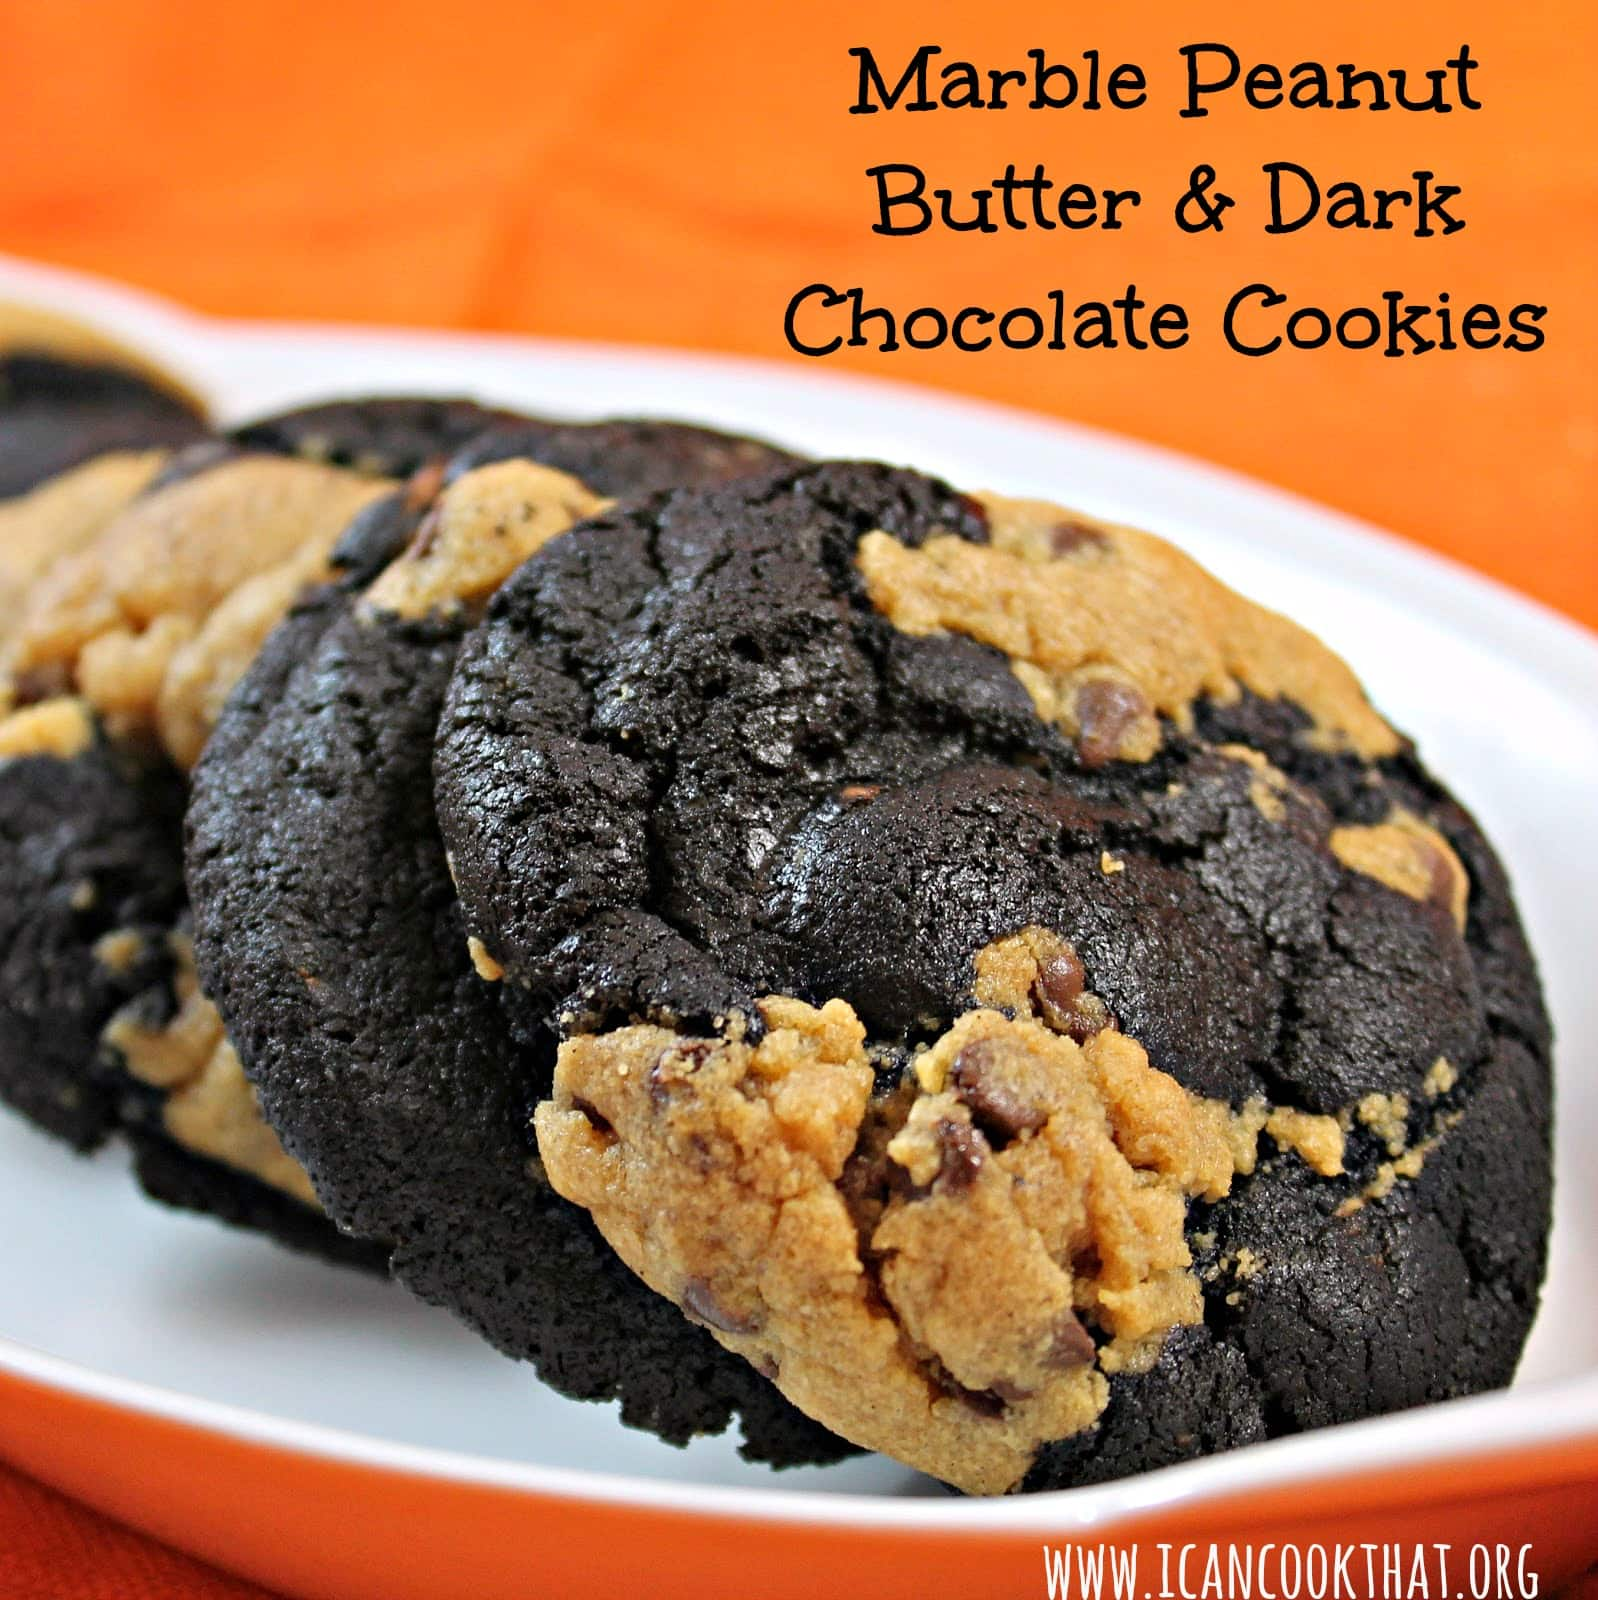 ... recipe for Marbled Peanut Butter & Chocolate Snickers cookies